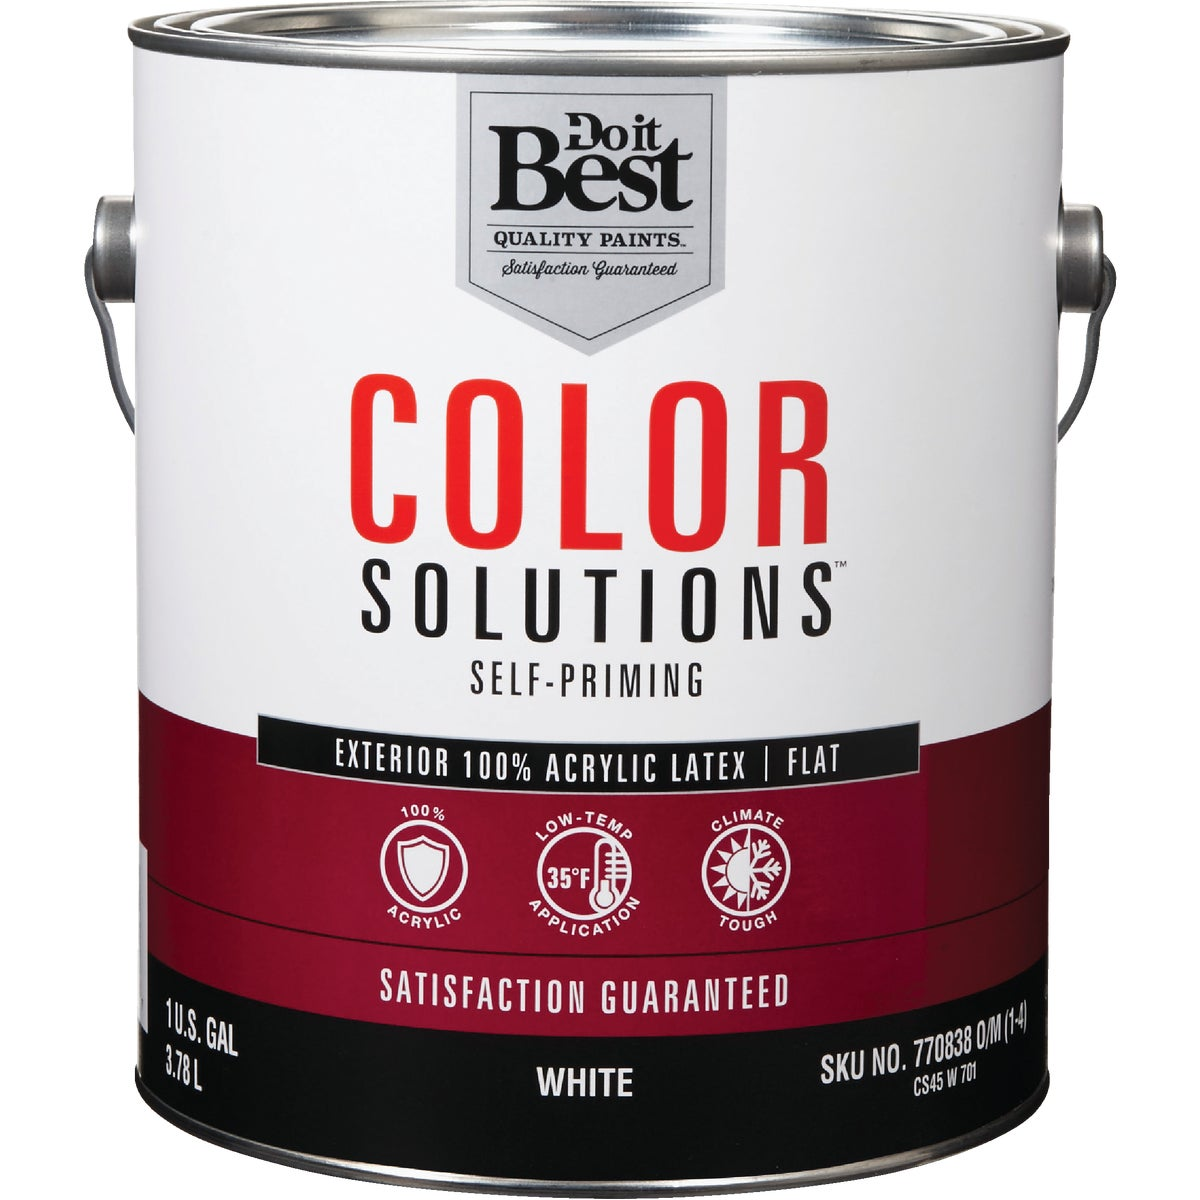 EXT FLAT WHITE PAINT - CS45W0701-16 by Do it Best